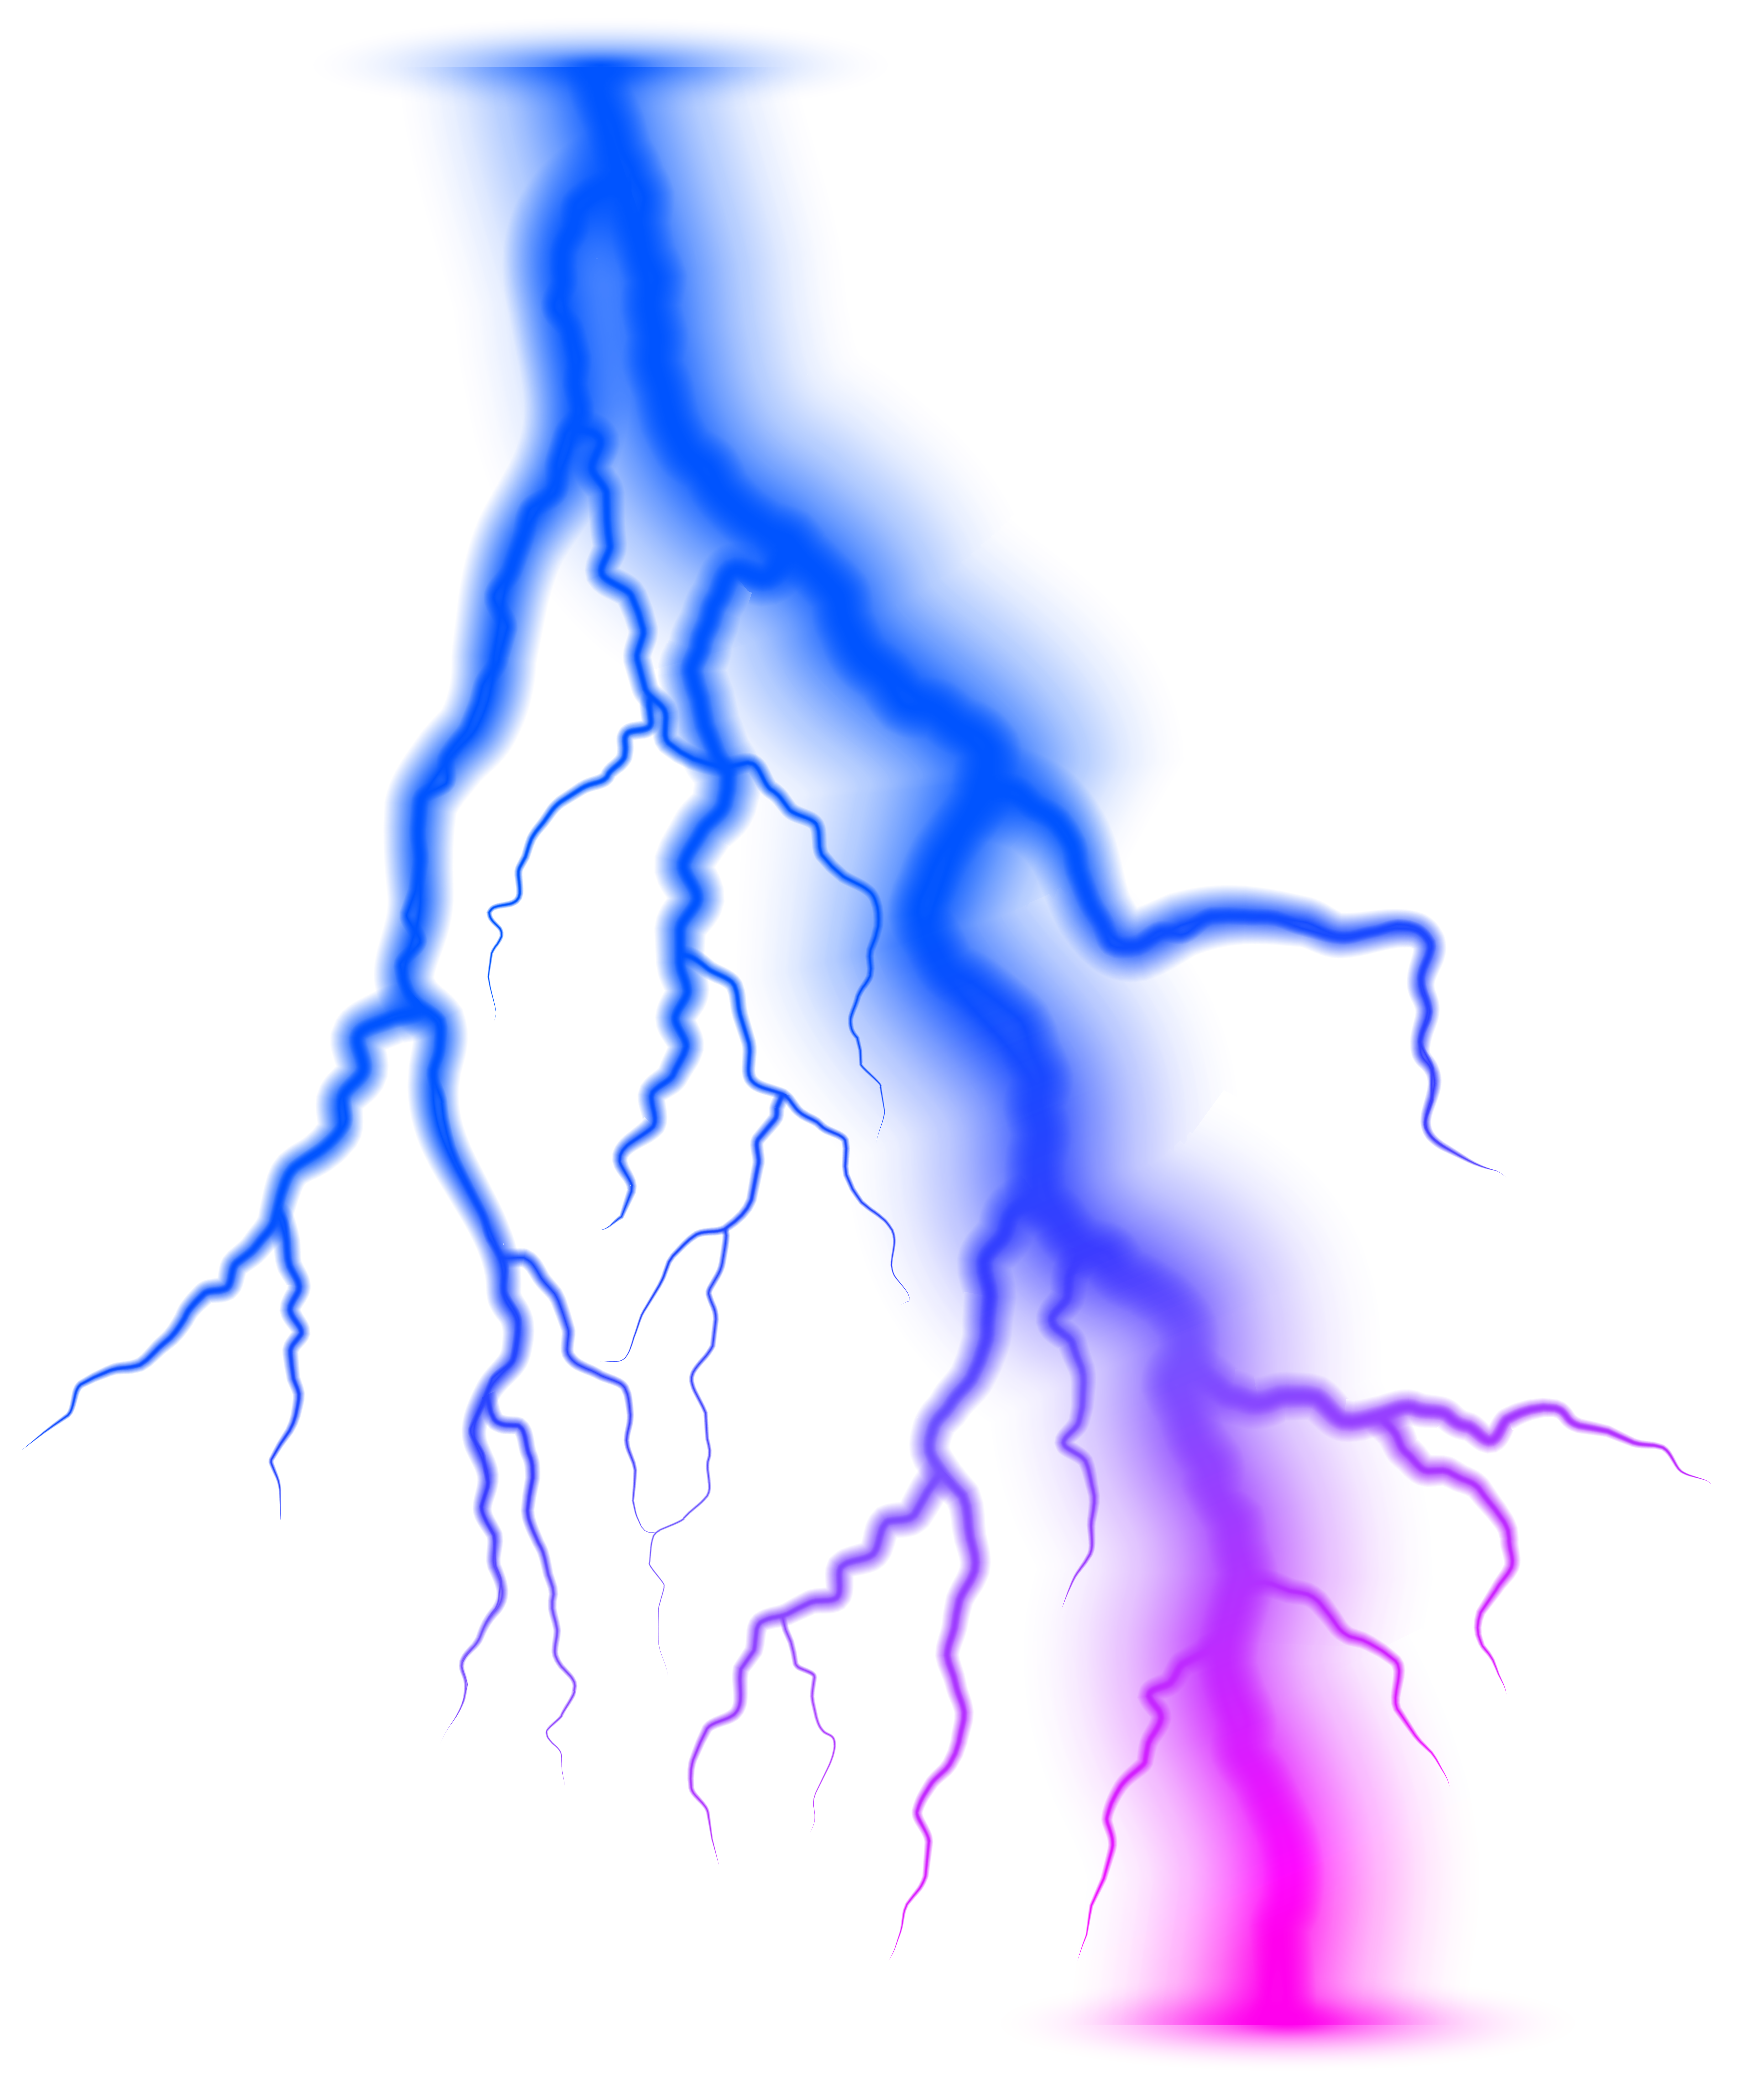 Lightning png no background. Collection of clipart